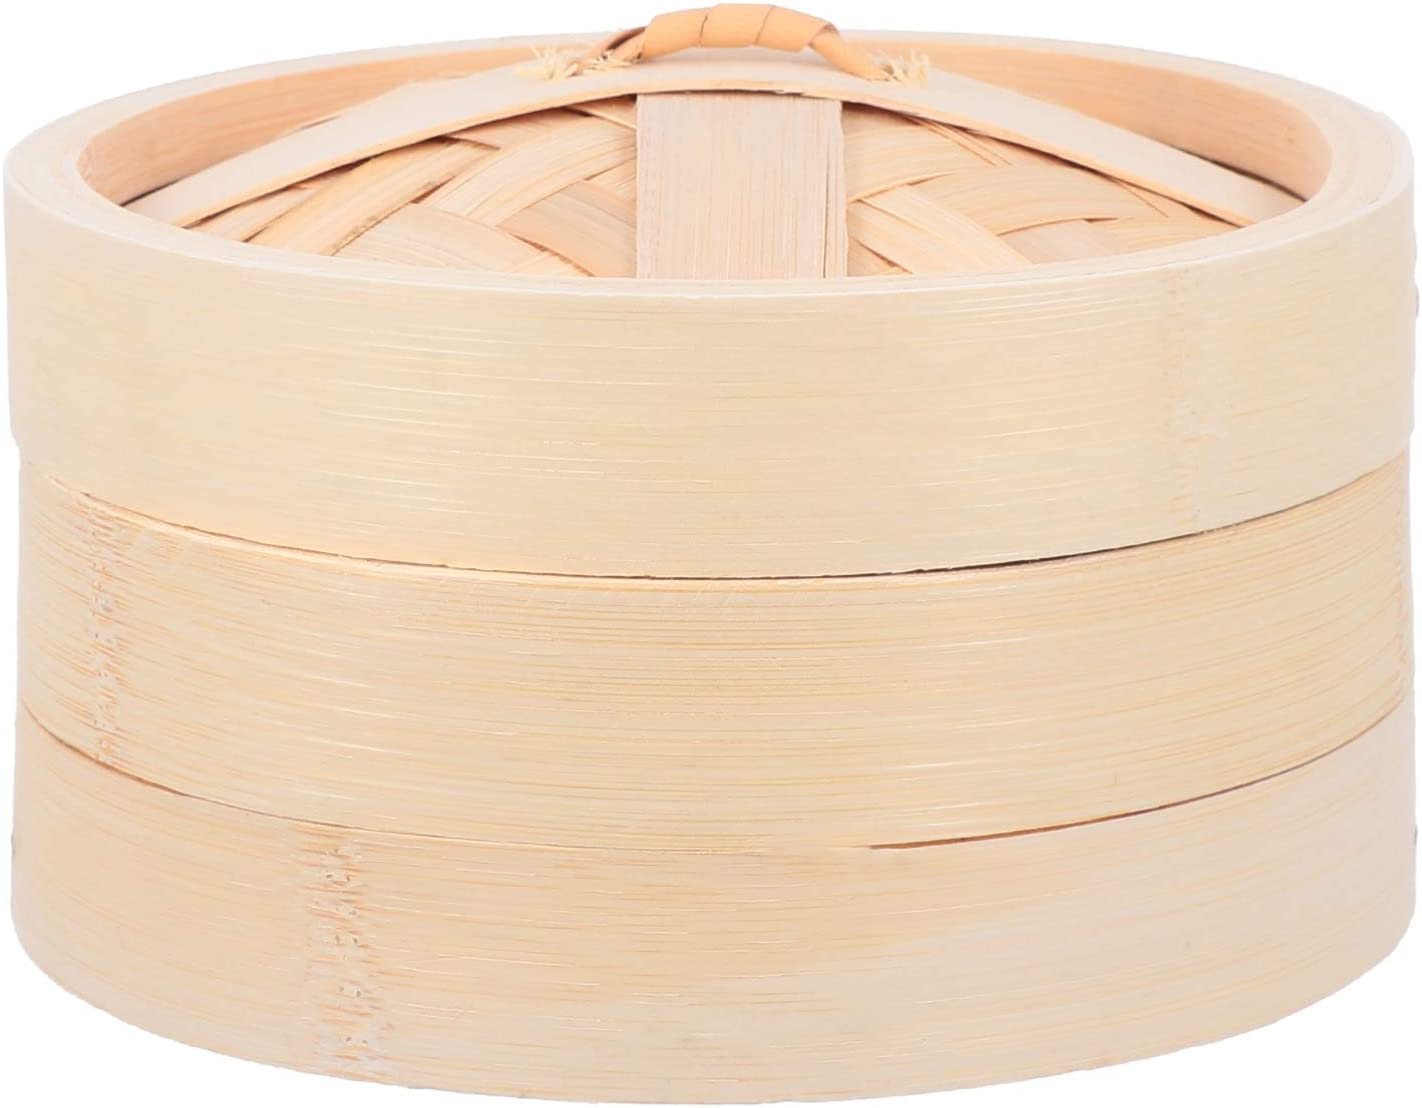 DOITOOL Wooden Food Steamer Basket Bamboo Dumpling Steamer Bao Bun Chinese Food Steamers with Lid for Rice Vegetables Meat Fish